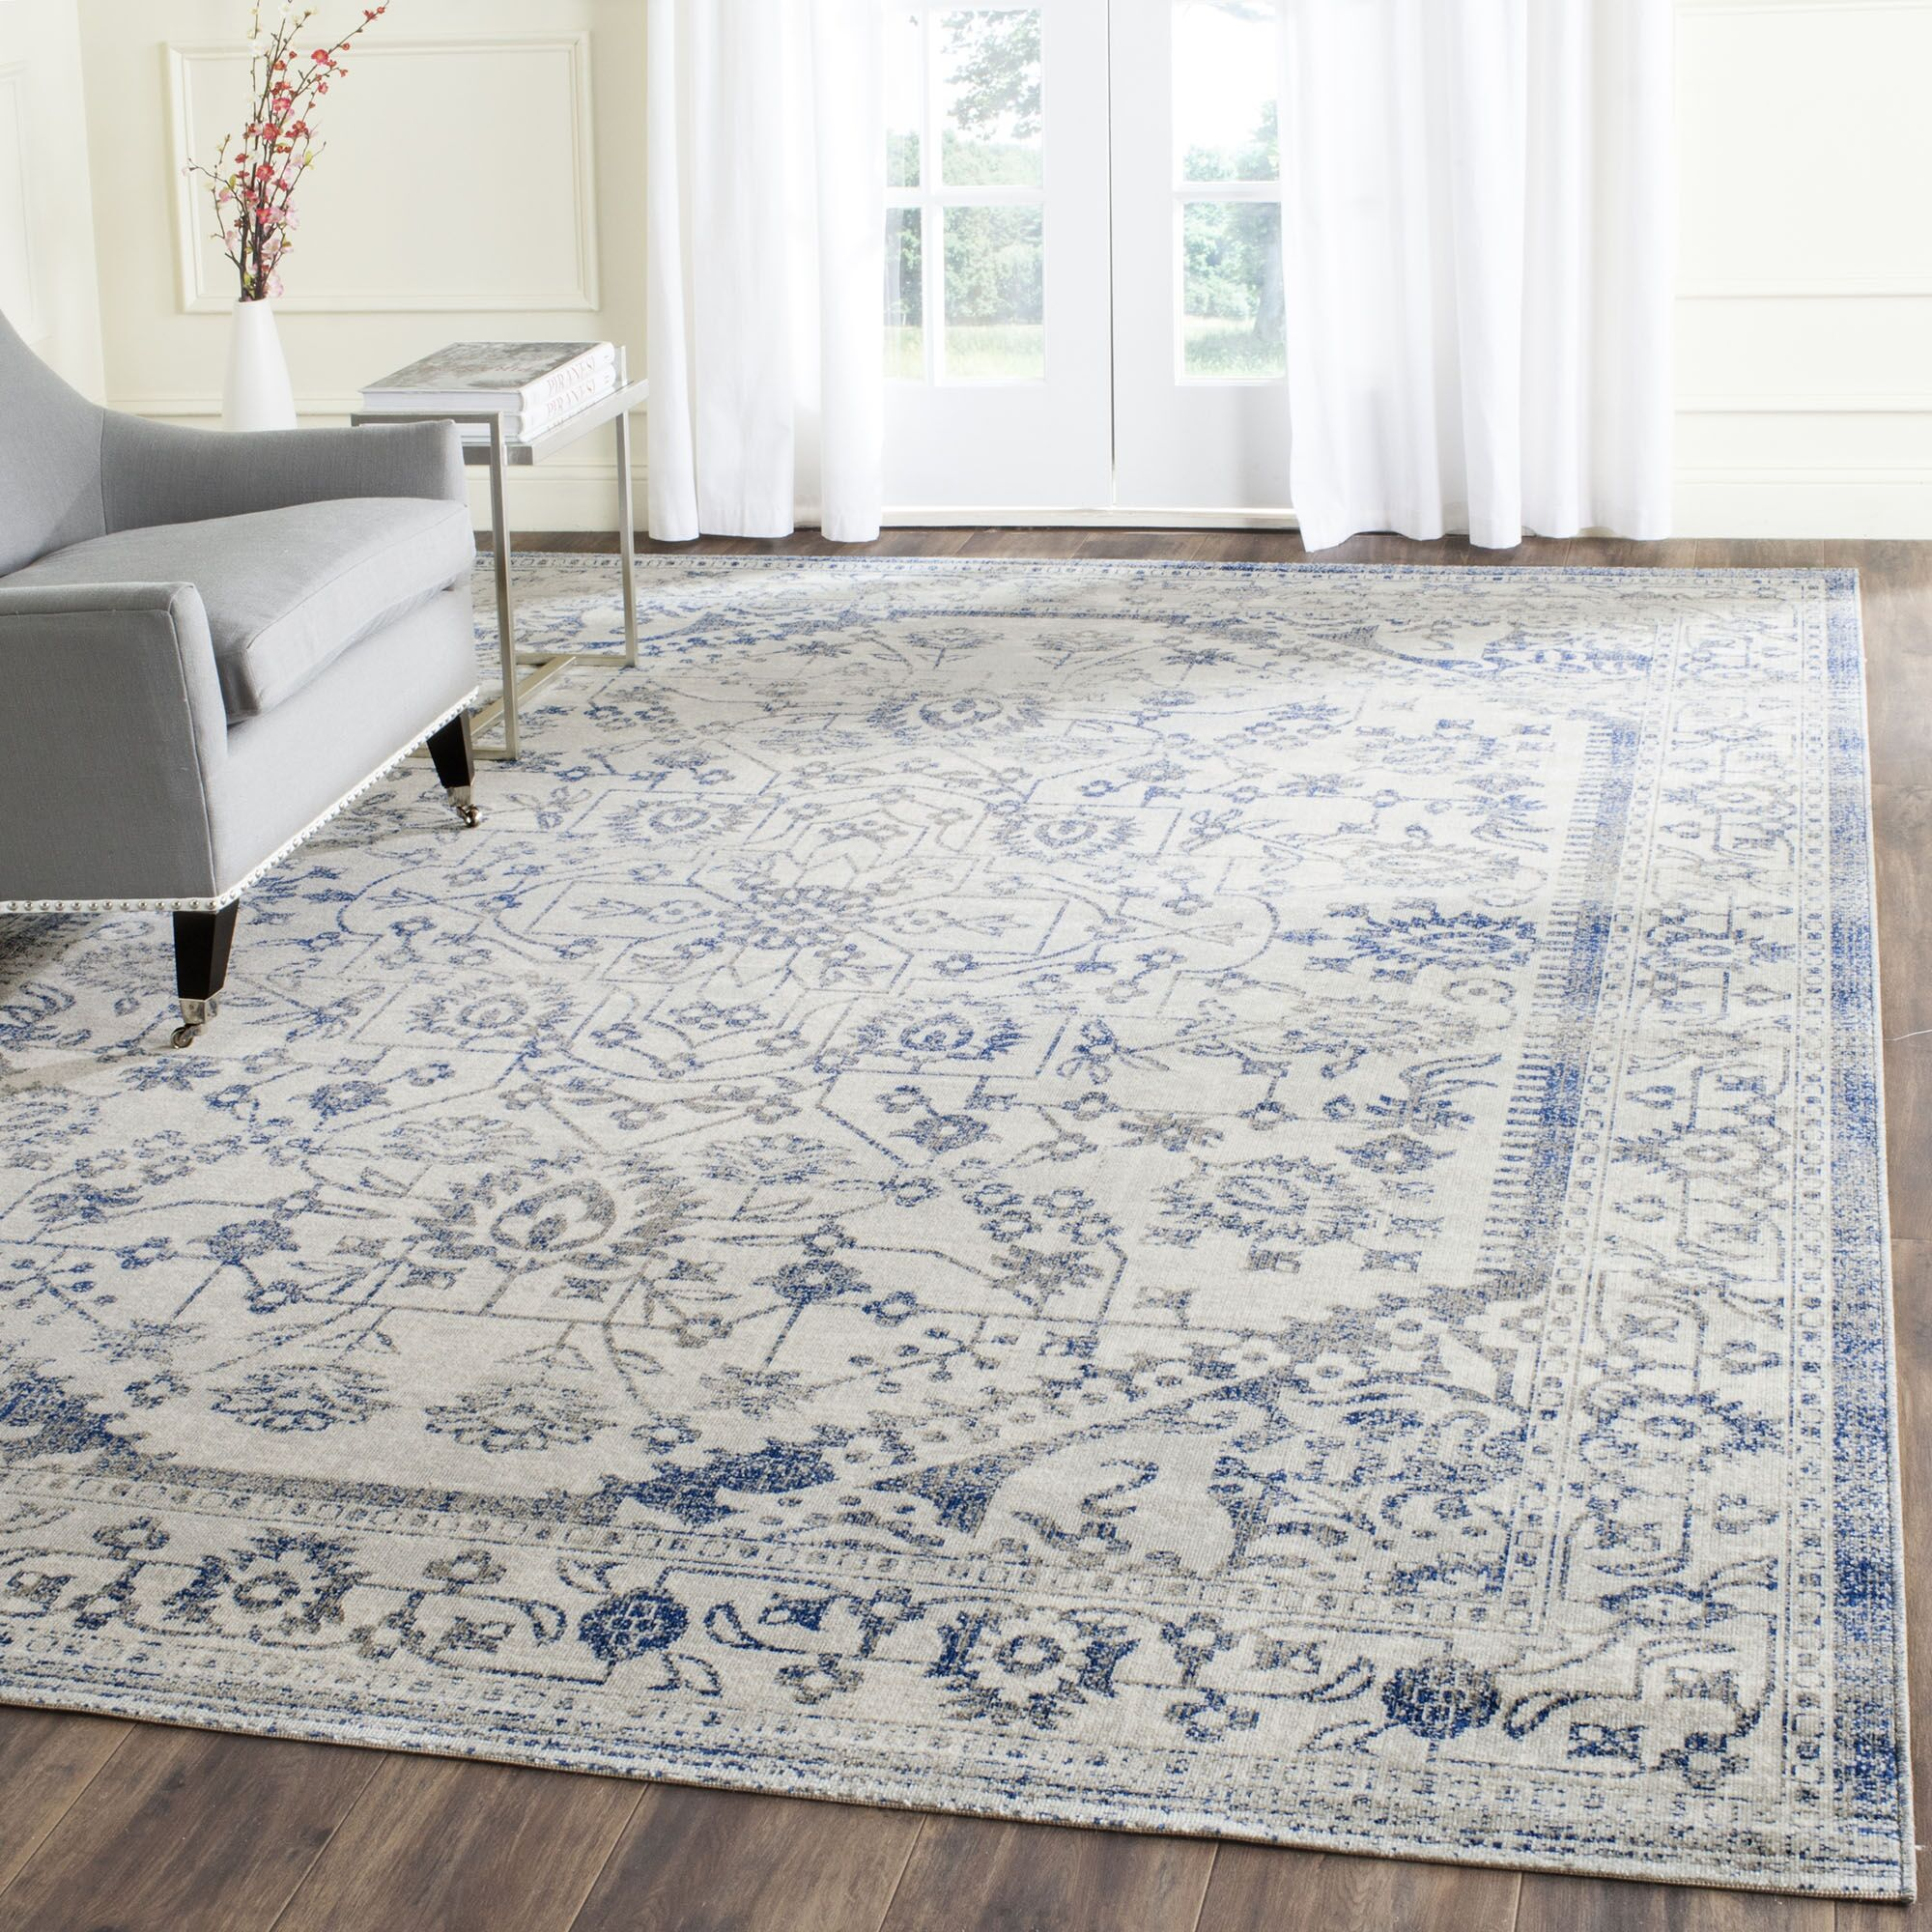 Harwood Cotton Silver/Blue Area Rug Rug Size: Rectangle 8' x 10'